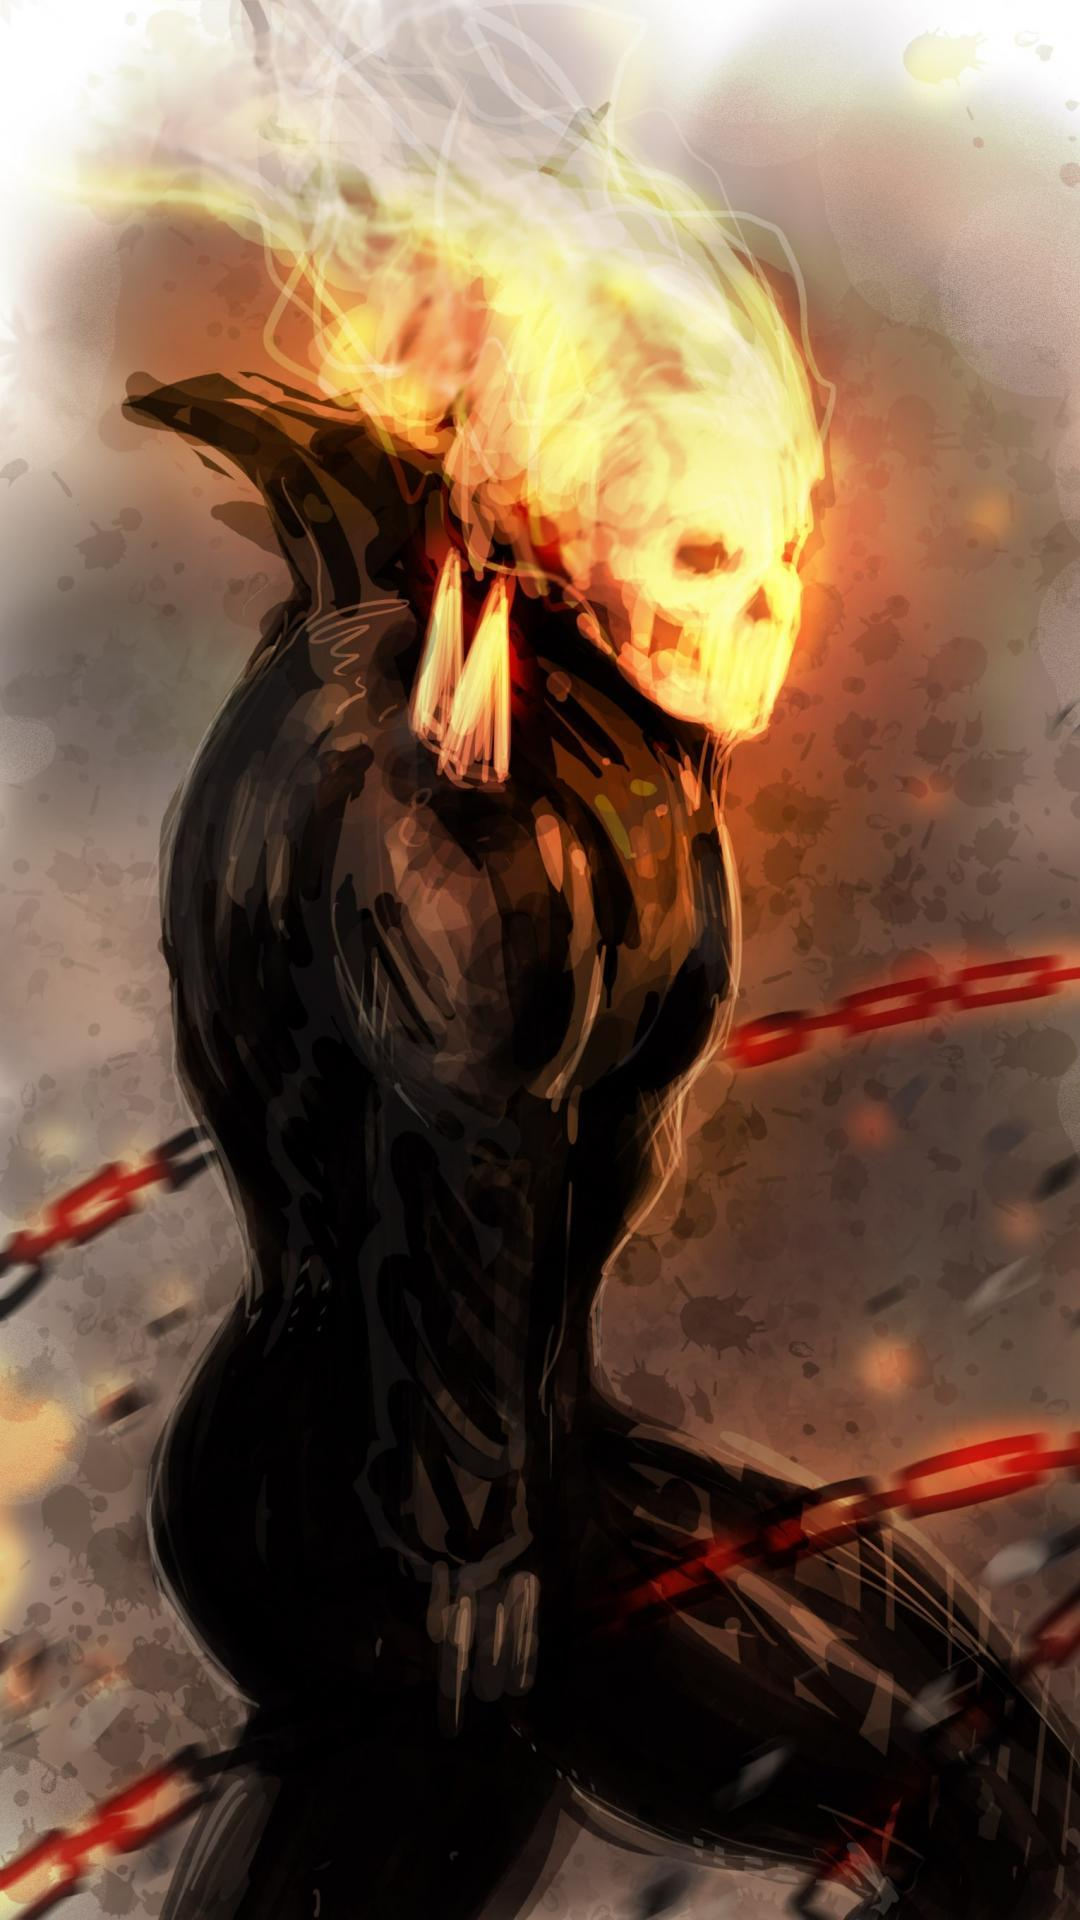 Comics fire ghost rider drawings chains traditional wallpapers